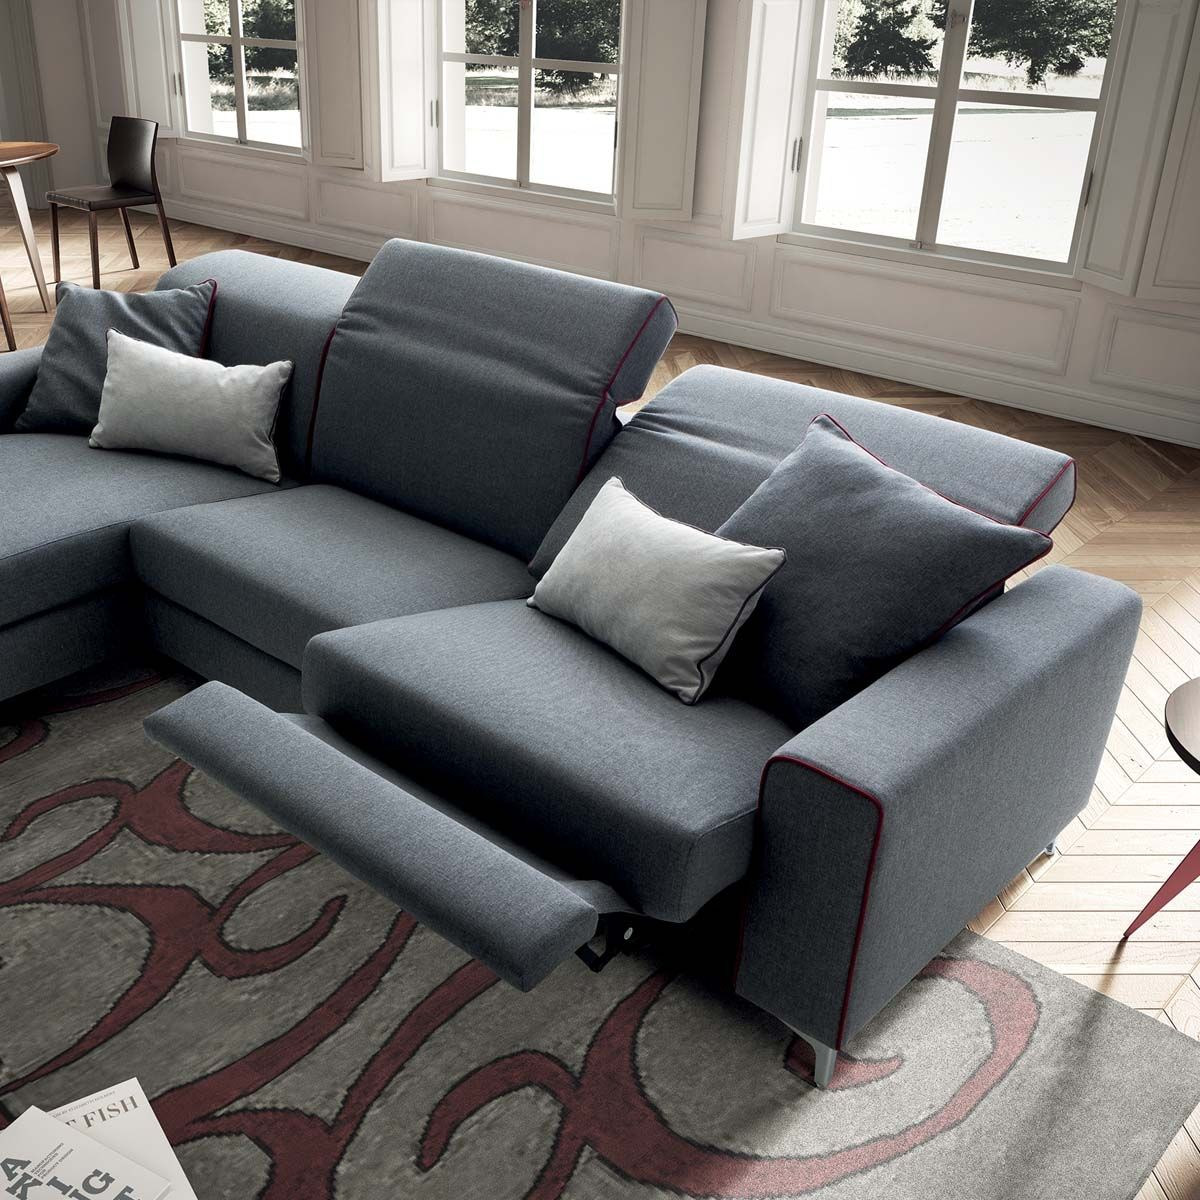 B.flex Divani E Poltrone Divano Con Chaise Longue Drive In Casarredostudio It